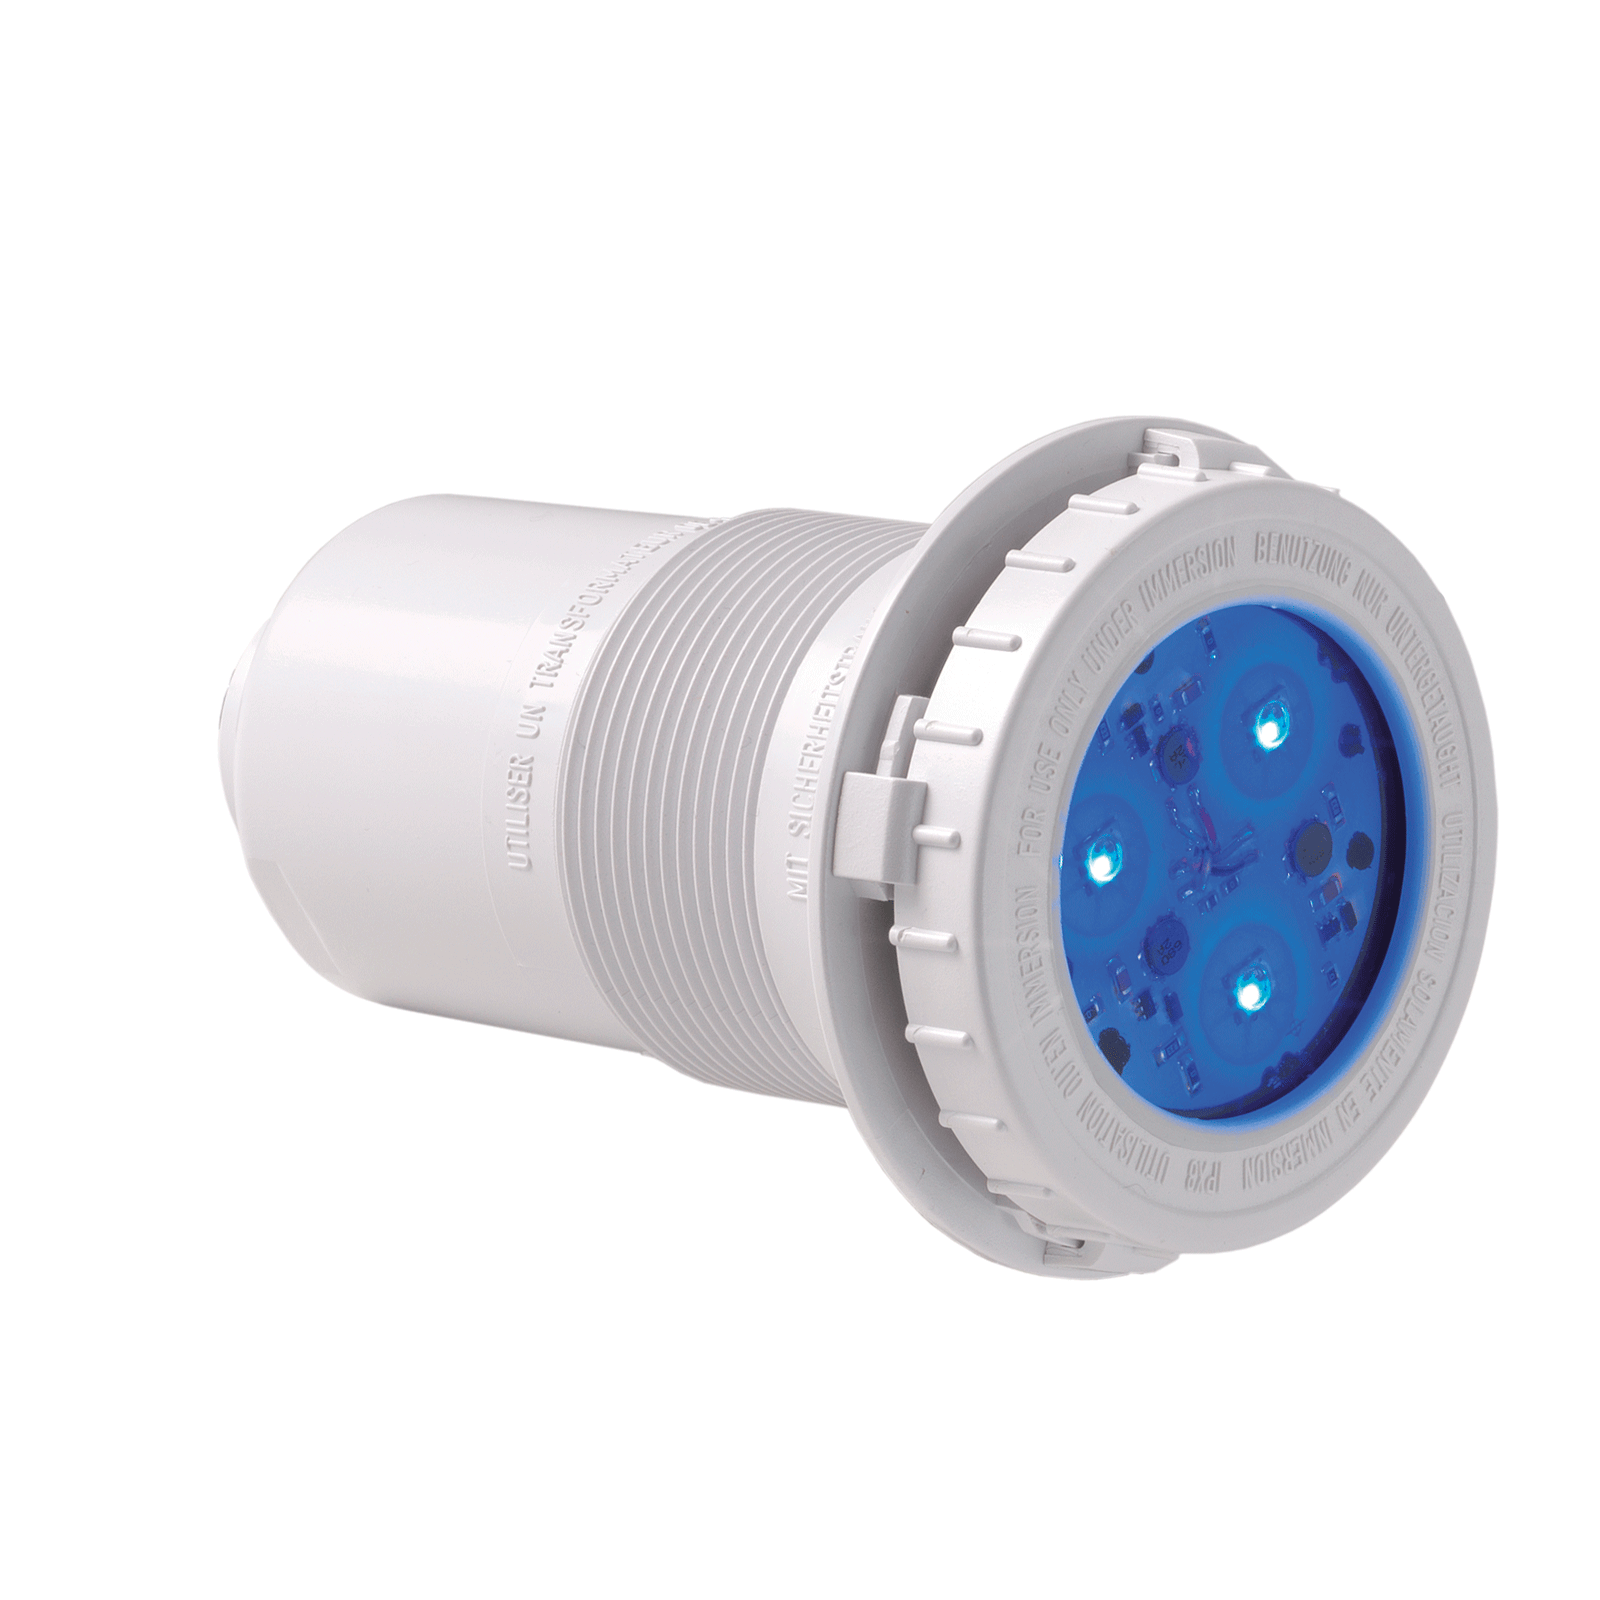 ColorLogic II / CrystaLogic Mini Led light